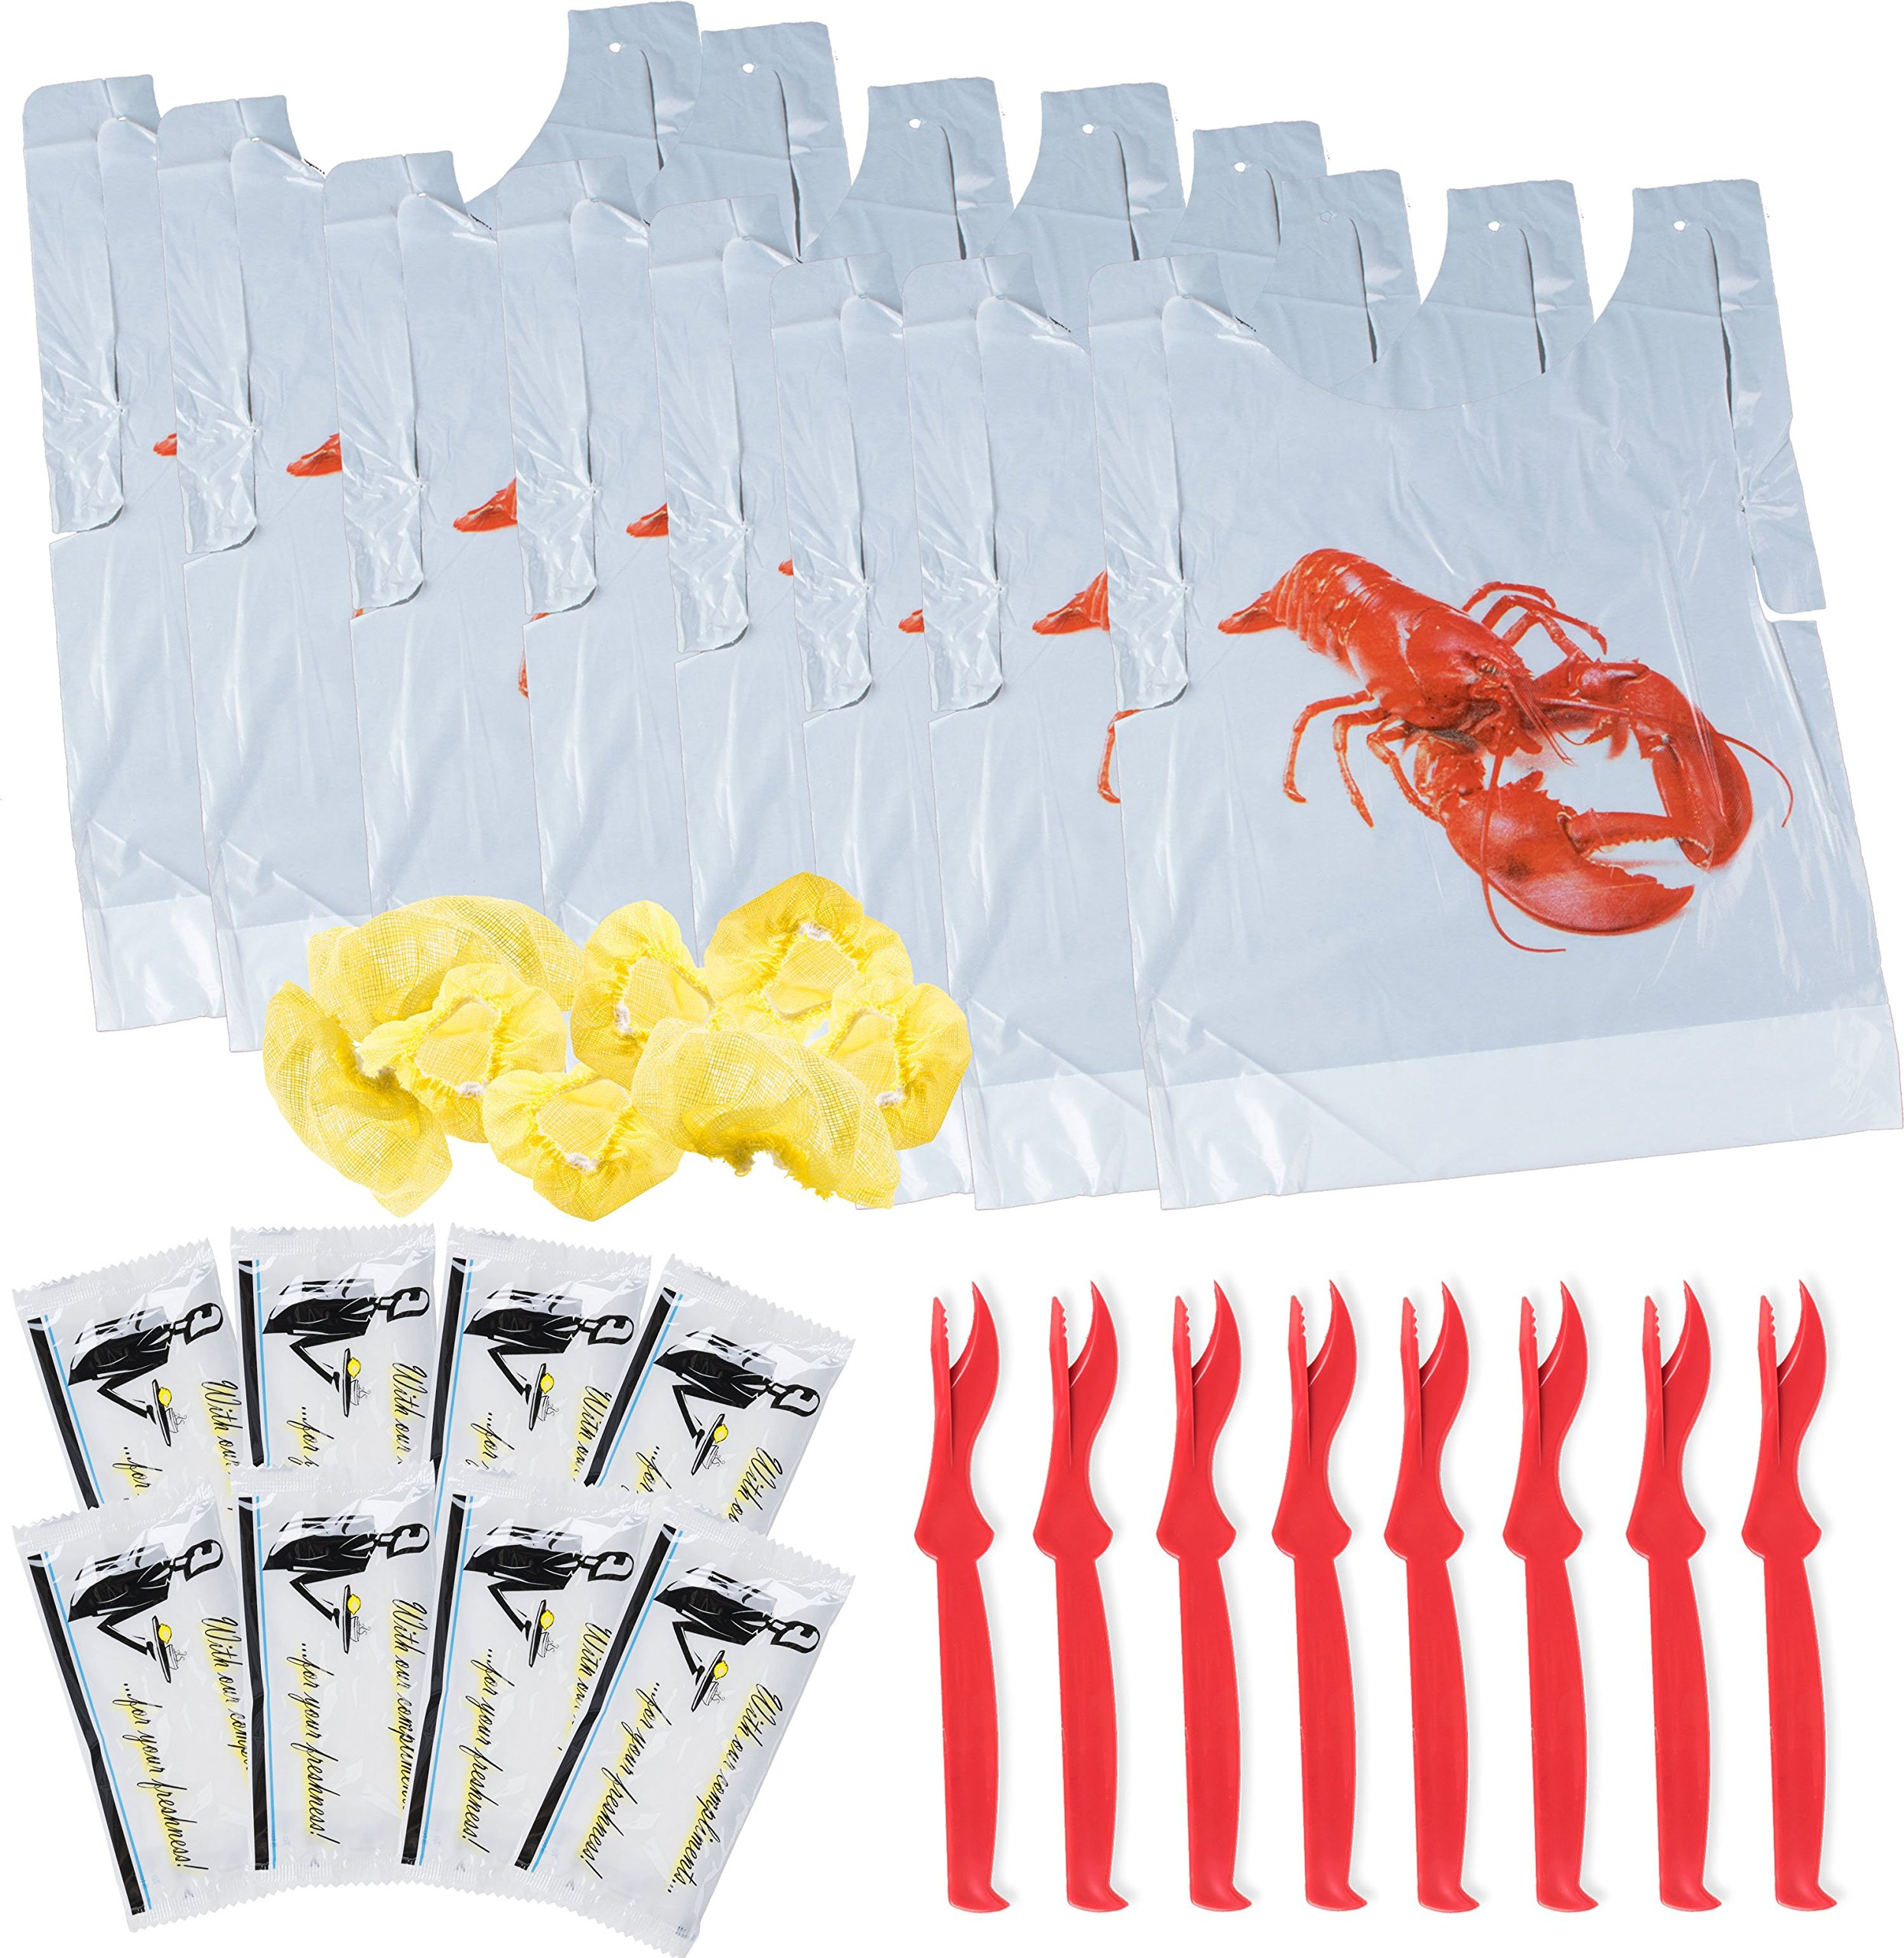 Cheap Disposable Plastic Bibs For Adults find Disposable Plastic